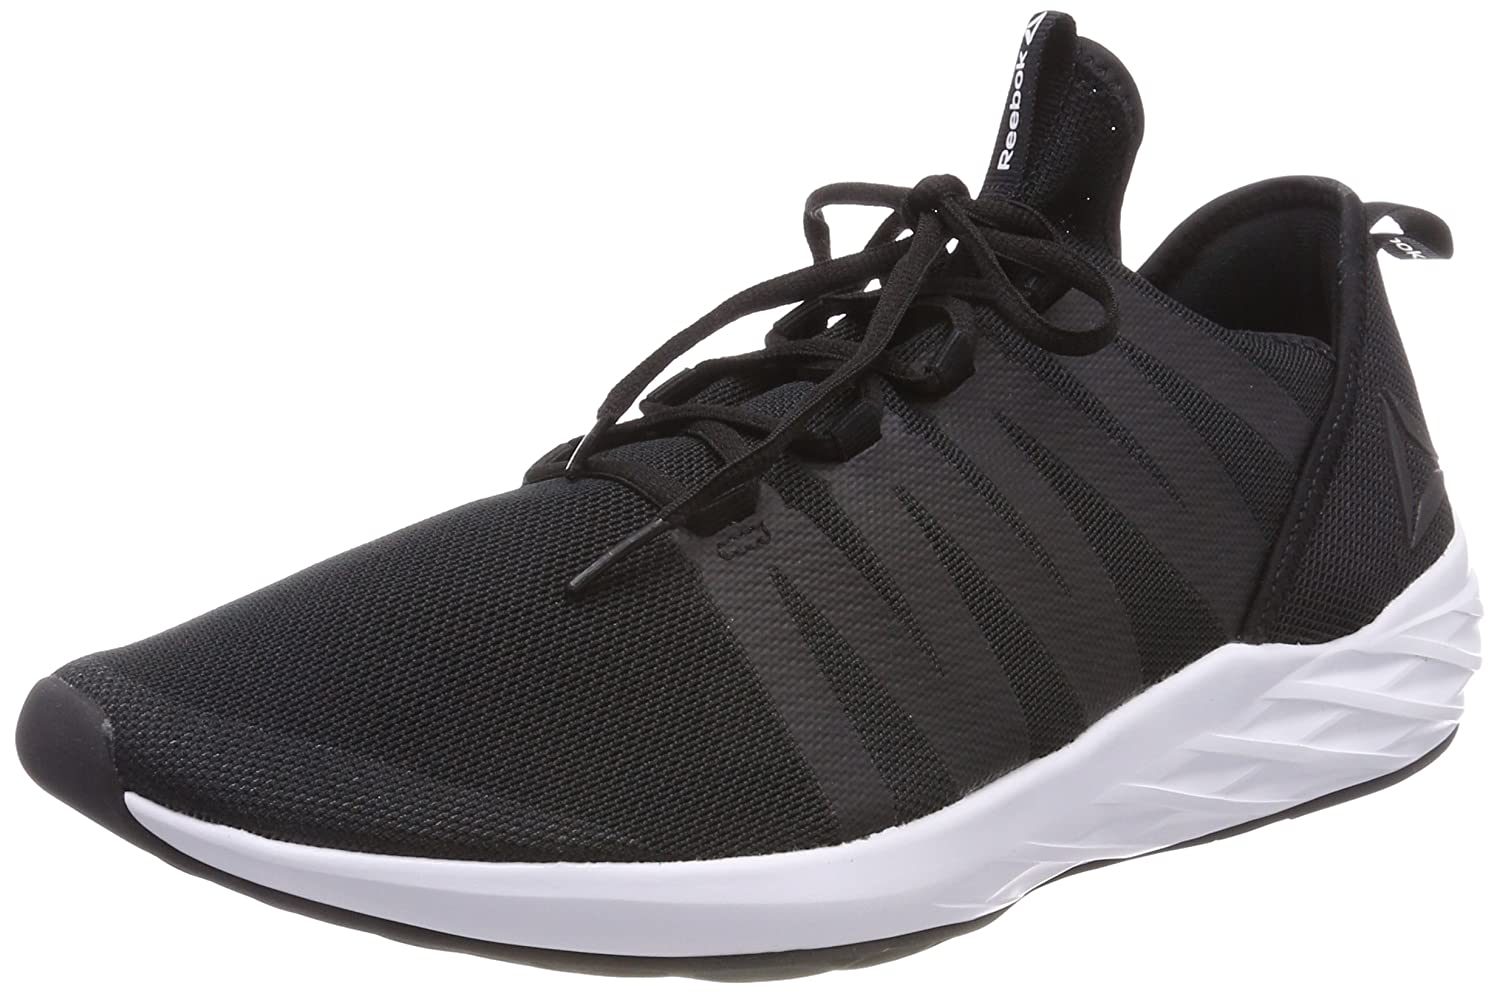 Reebok Astroride Future, Zapatillas de Trail Running para Hombre 41 EU|Negro (Black/Ash Grey/White 000)